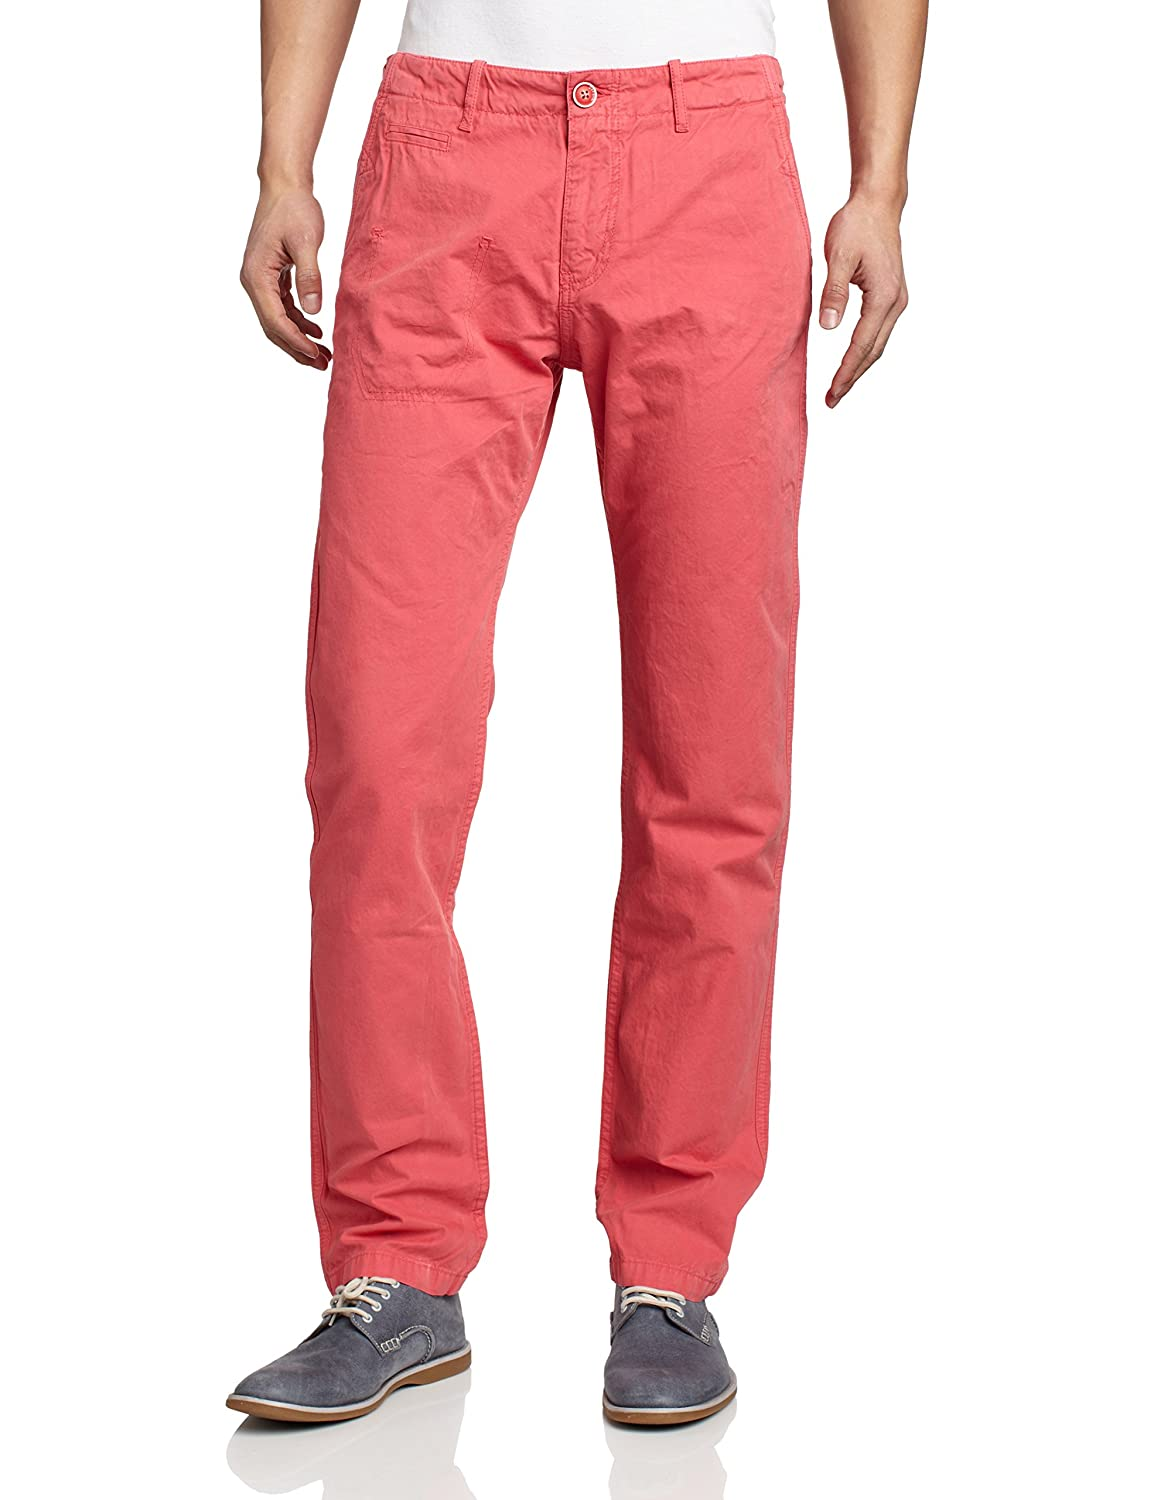 Desigual Men's Trousers Red sanft rot